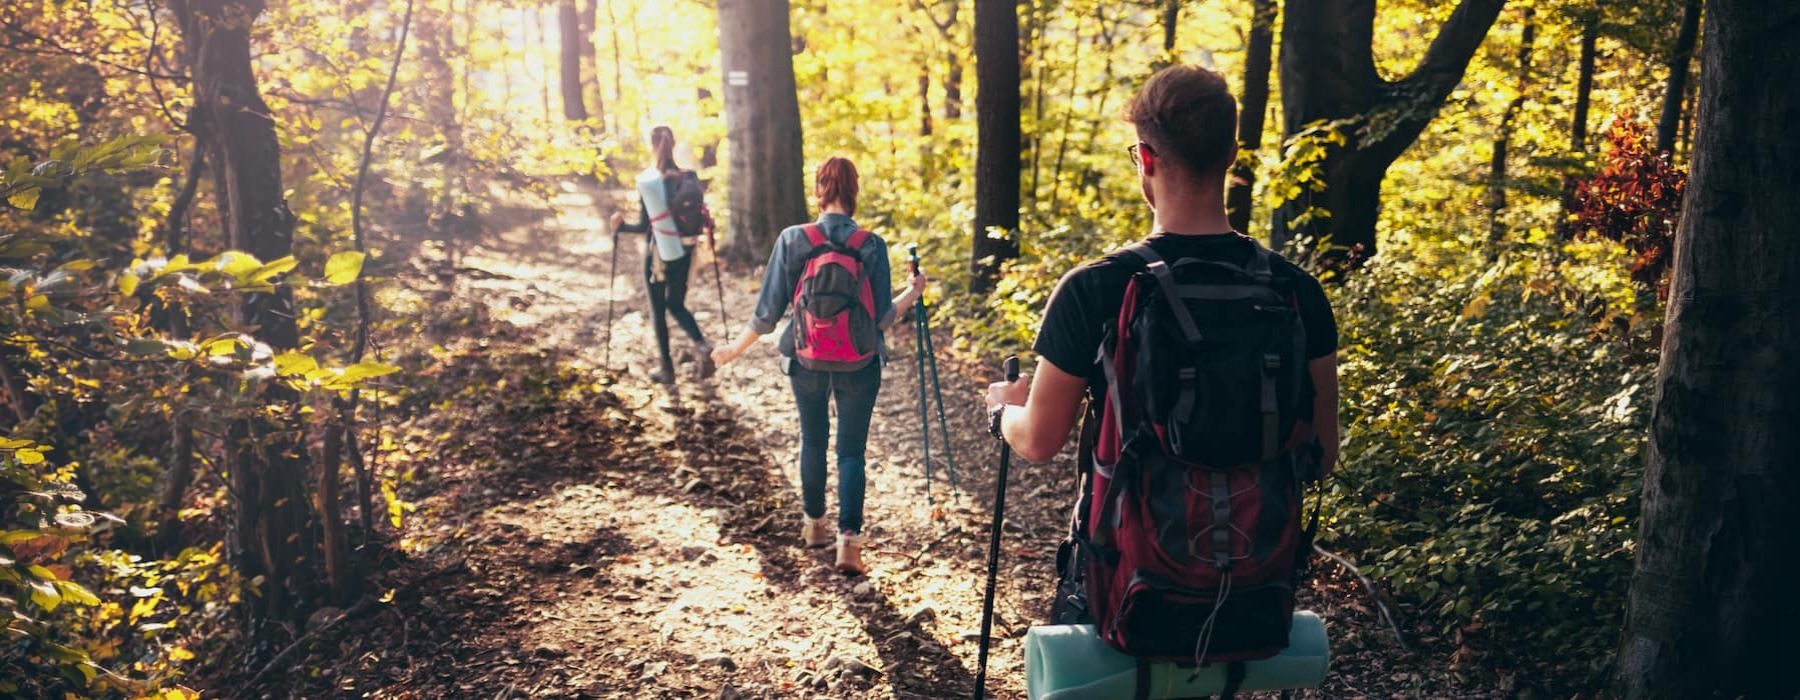 lifestyle image of a few people hiking in bright woods